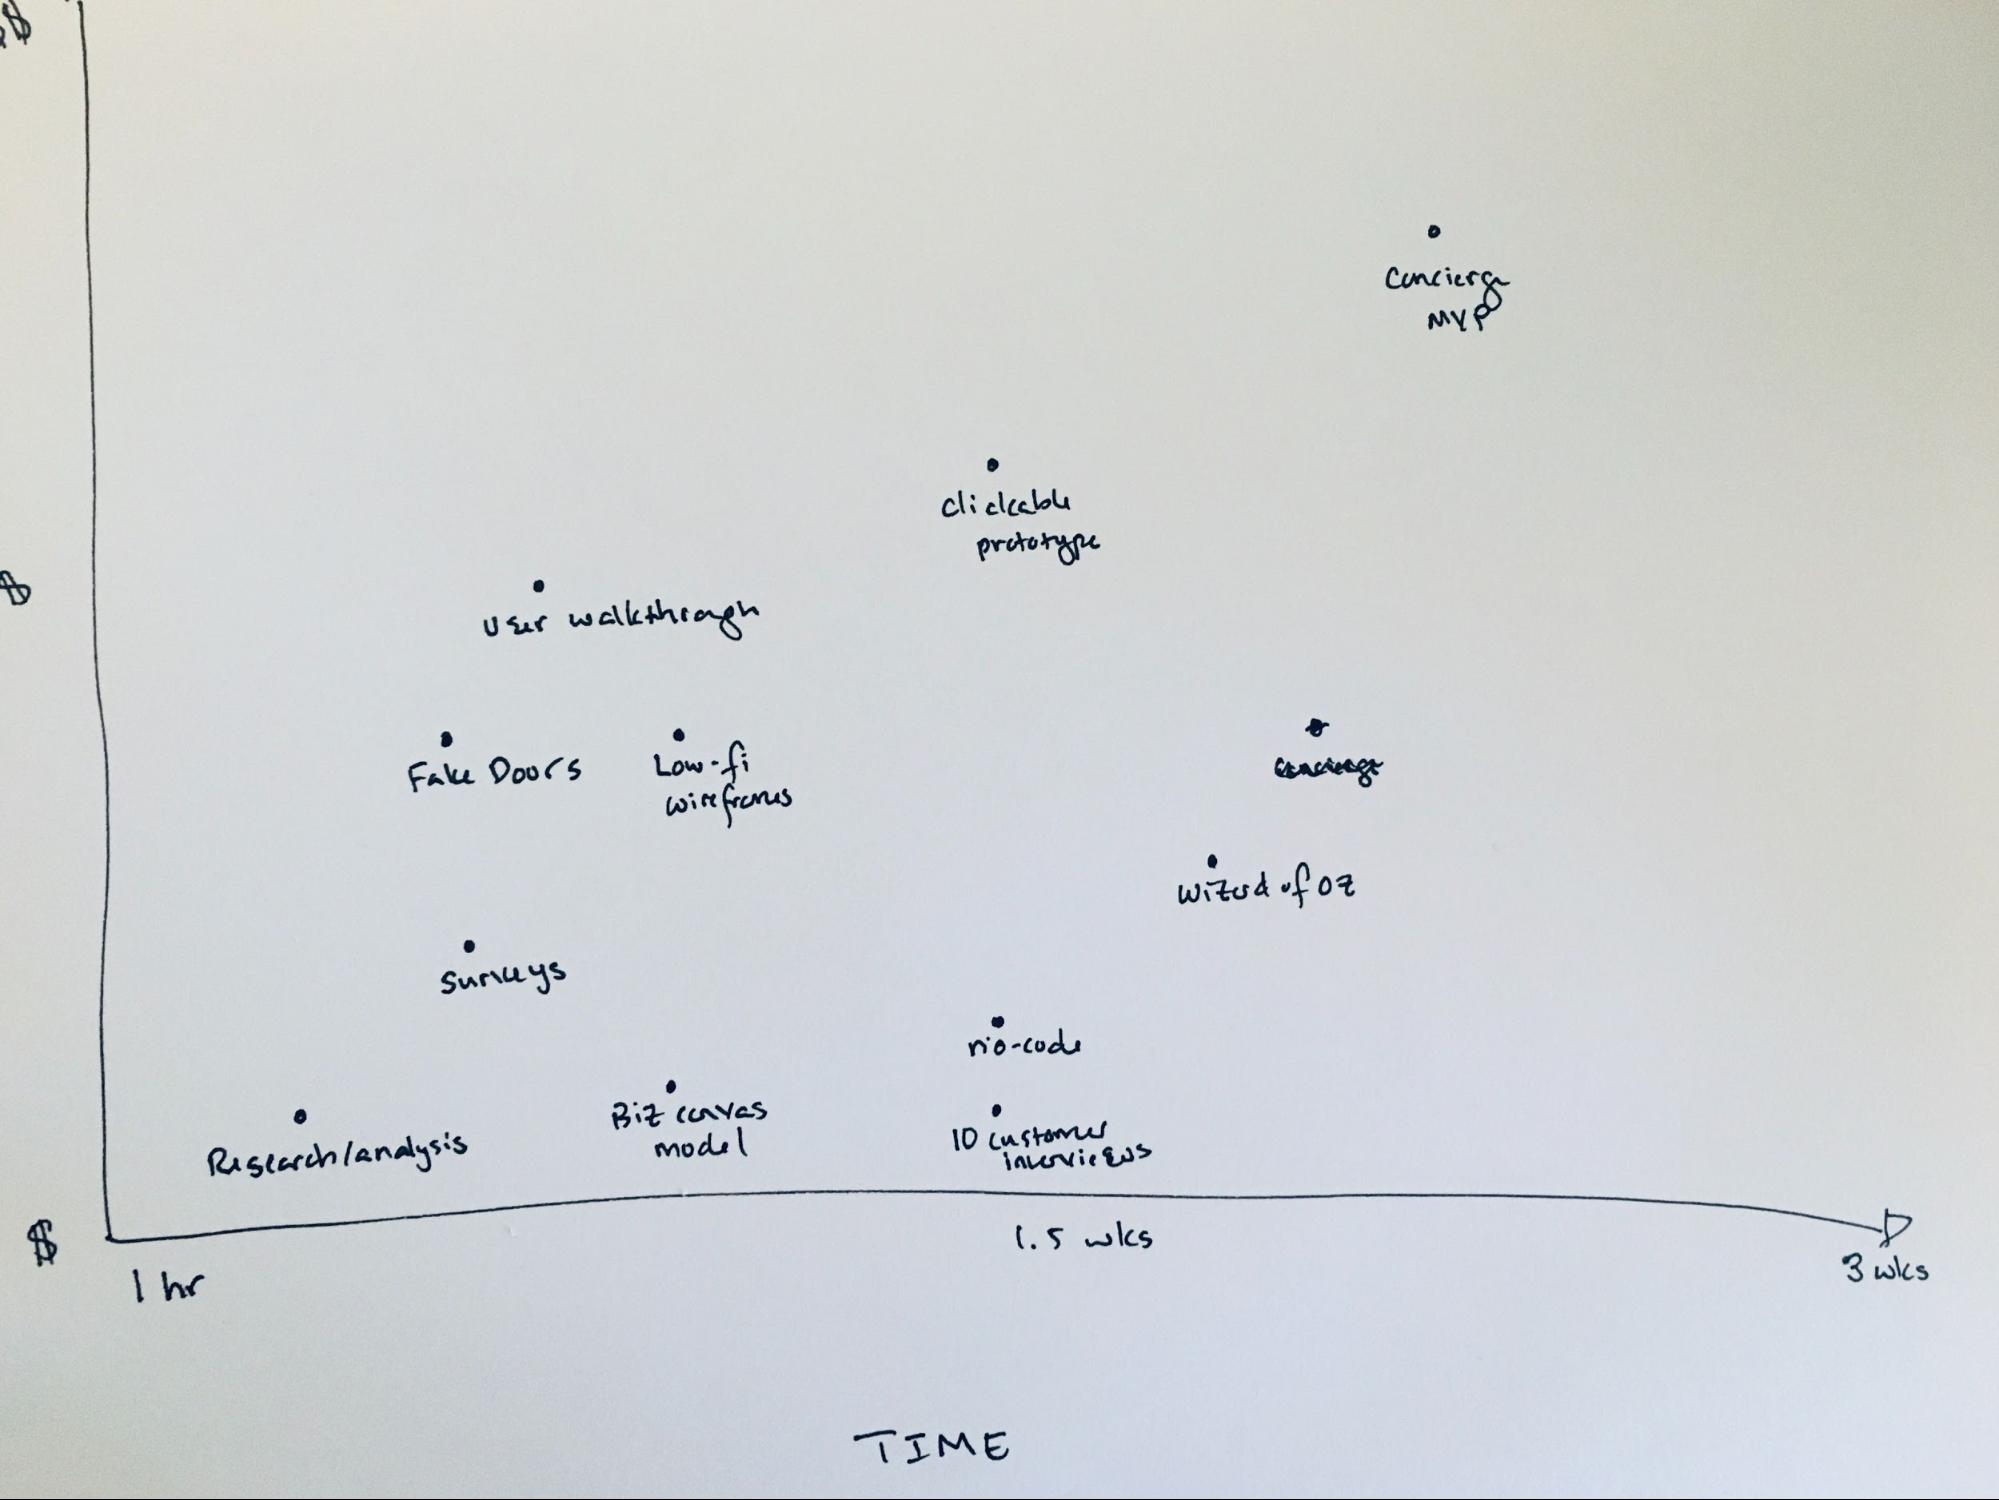 Whiteboard with a spectrum of mvp options